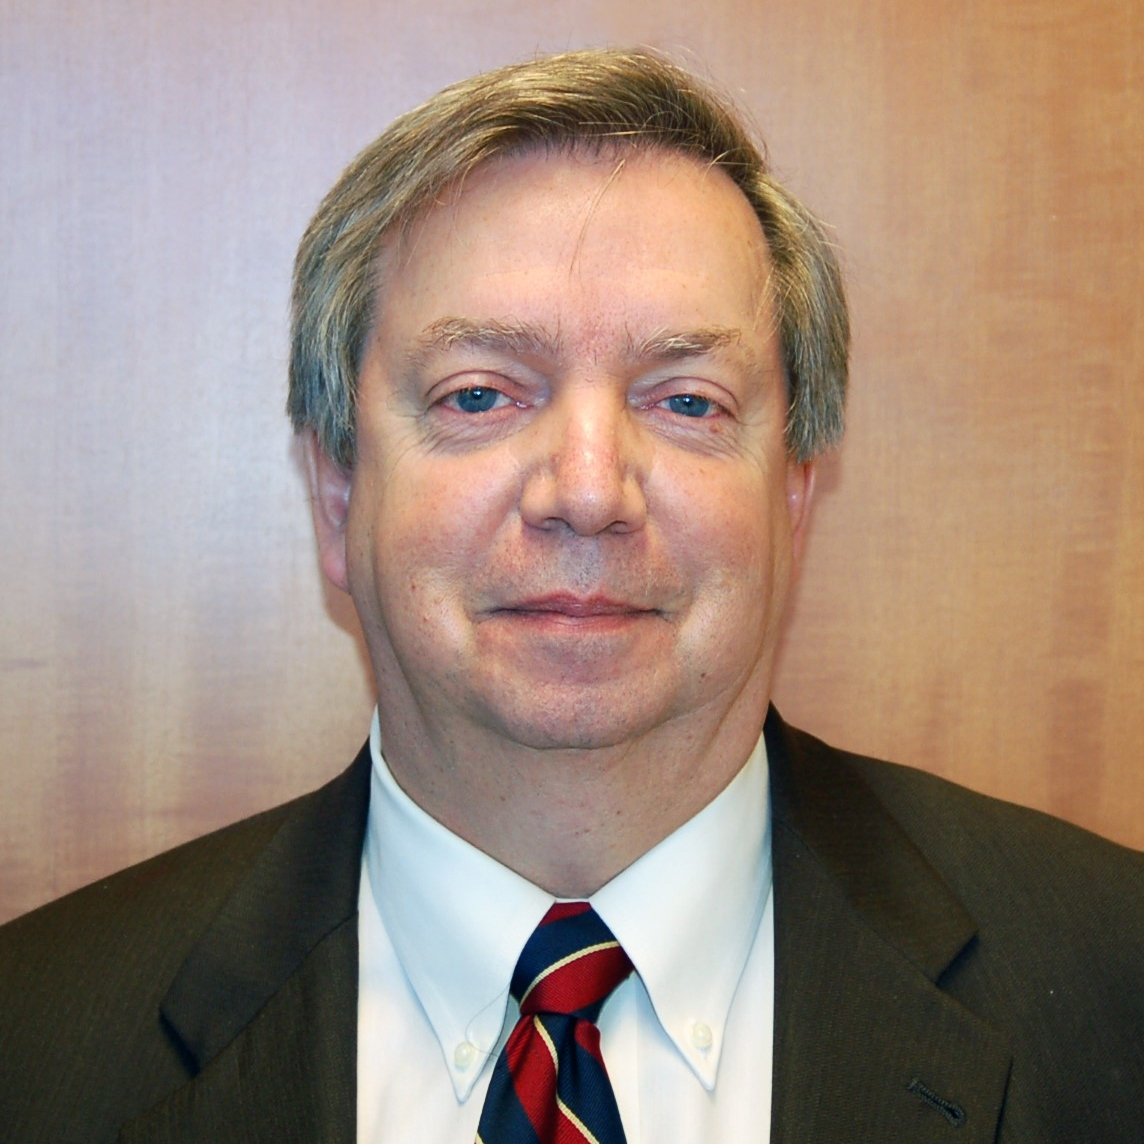 Karl Schmalz - Former Assistant General Tax Counsel, Exxon Mobil Corporation